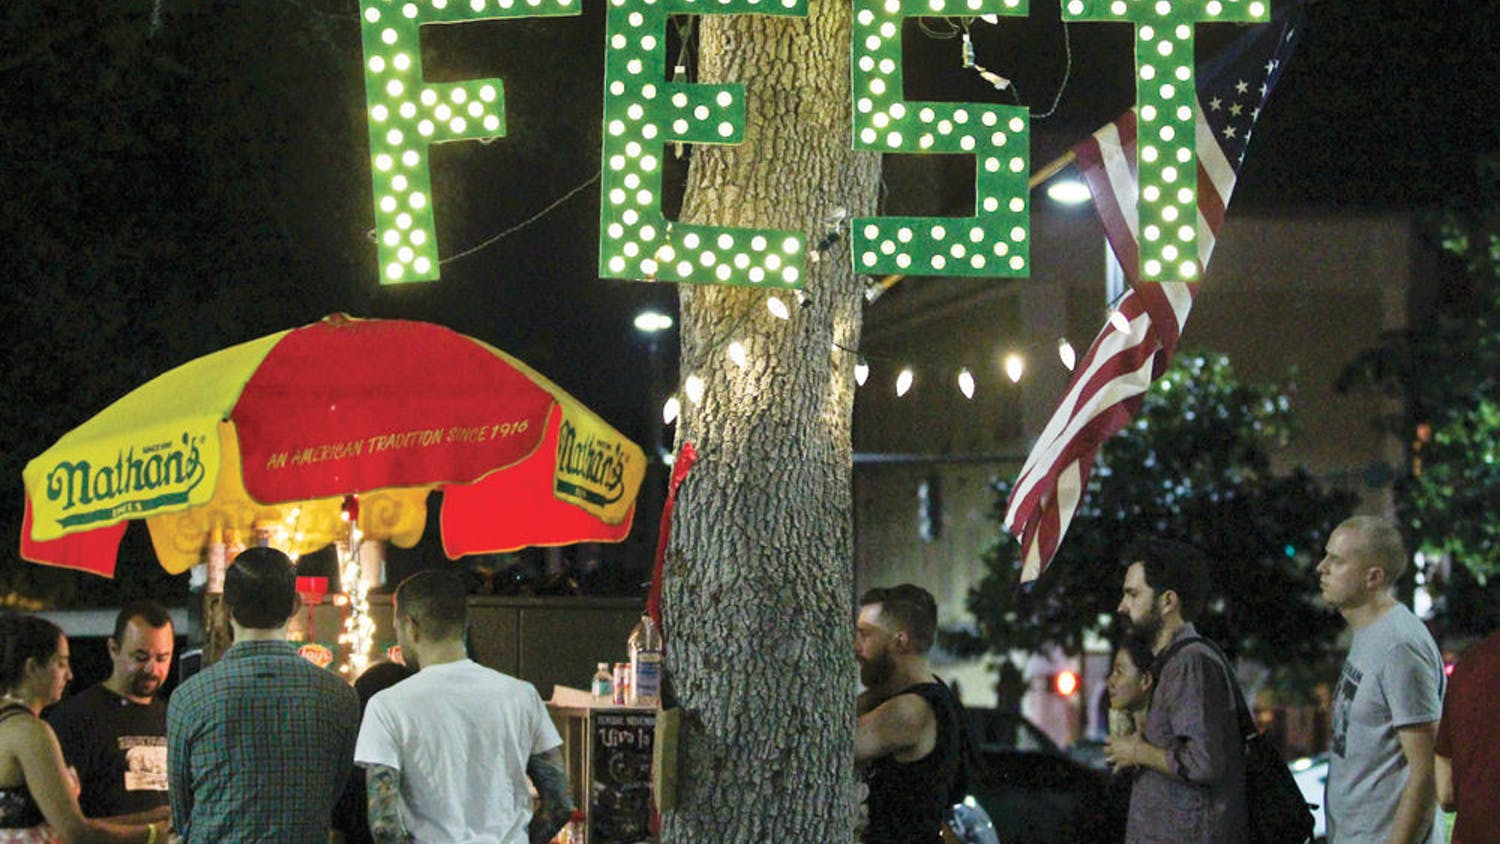 Festival-goers crowd a hot dog stand during FEST 14 on Oct. 31, 2015.